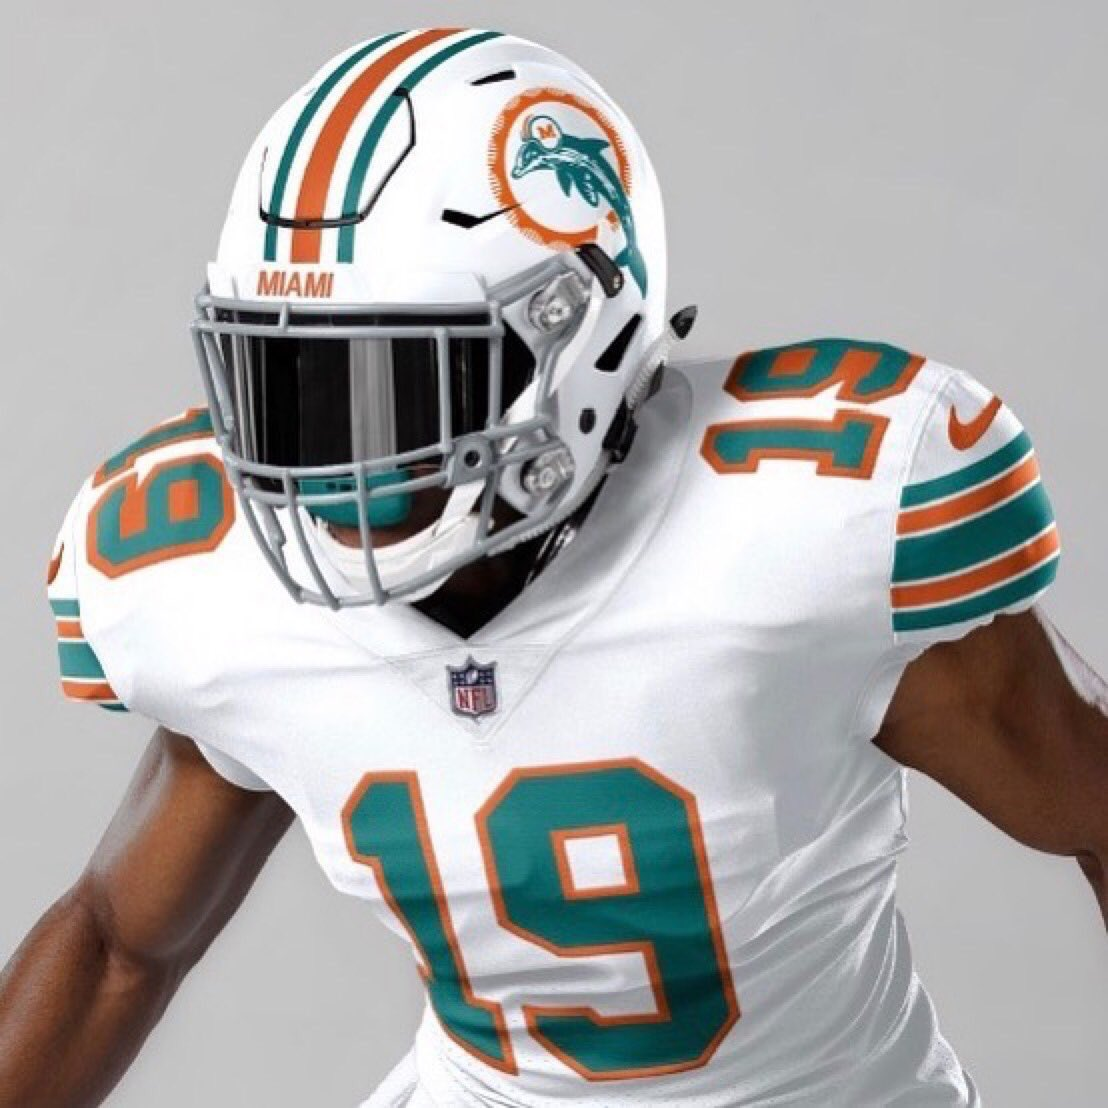 Throwback unis this season for the @MiamiDolphins   #uniswag<br>http://pic.twitter.com/LqDQ89VO18